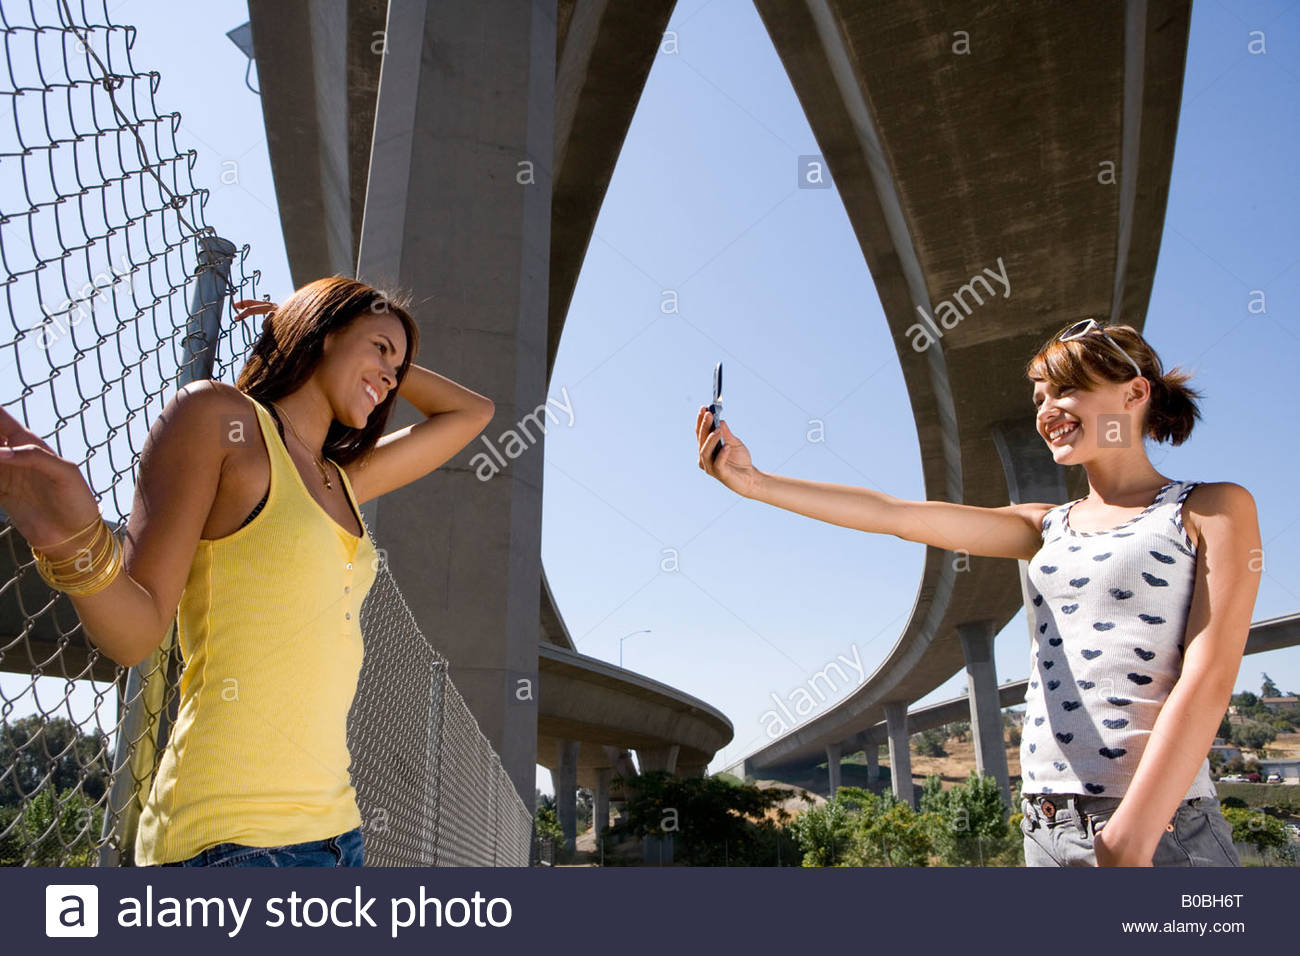 Young woman taking photograph of friend by fence beneath overpasses, low angle view - Stock Image